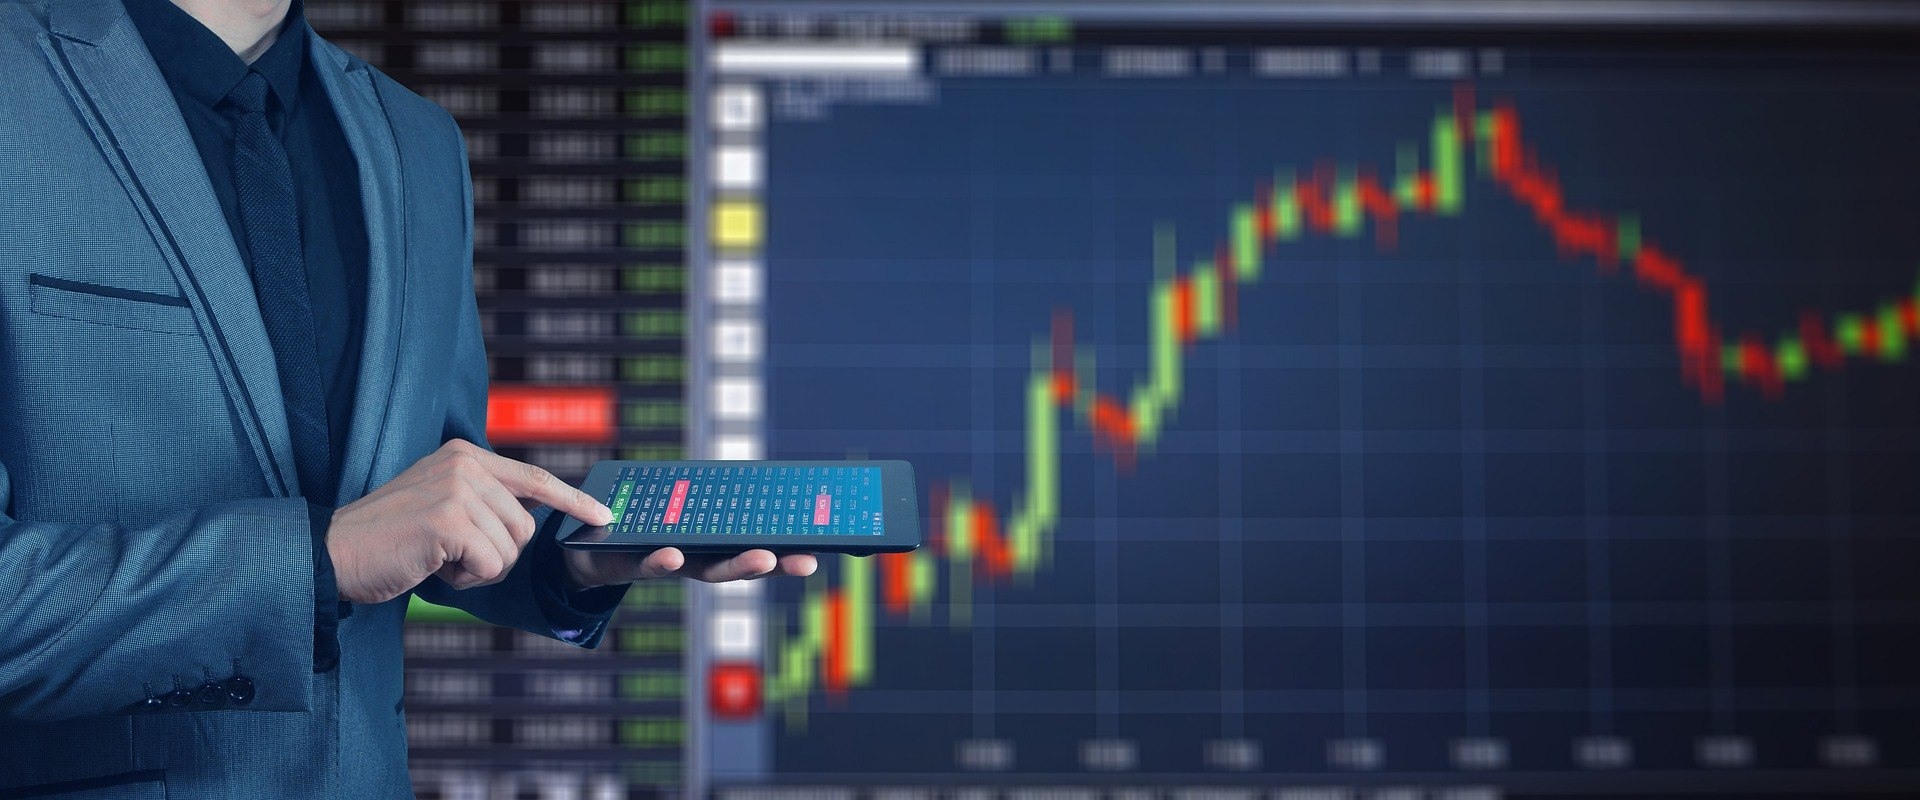 Crypto Analyst Luke Martin Gives DeFi Picks to Beat Bitcoin in 2021